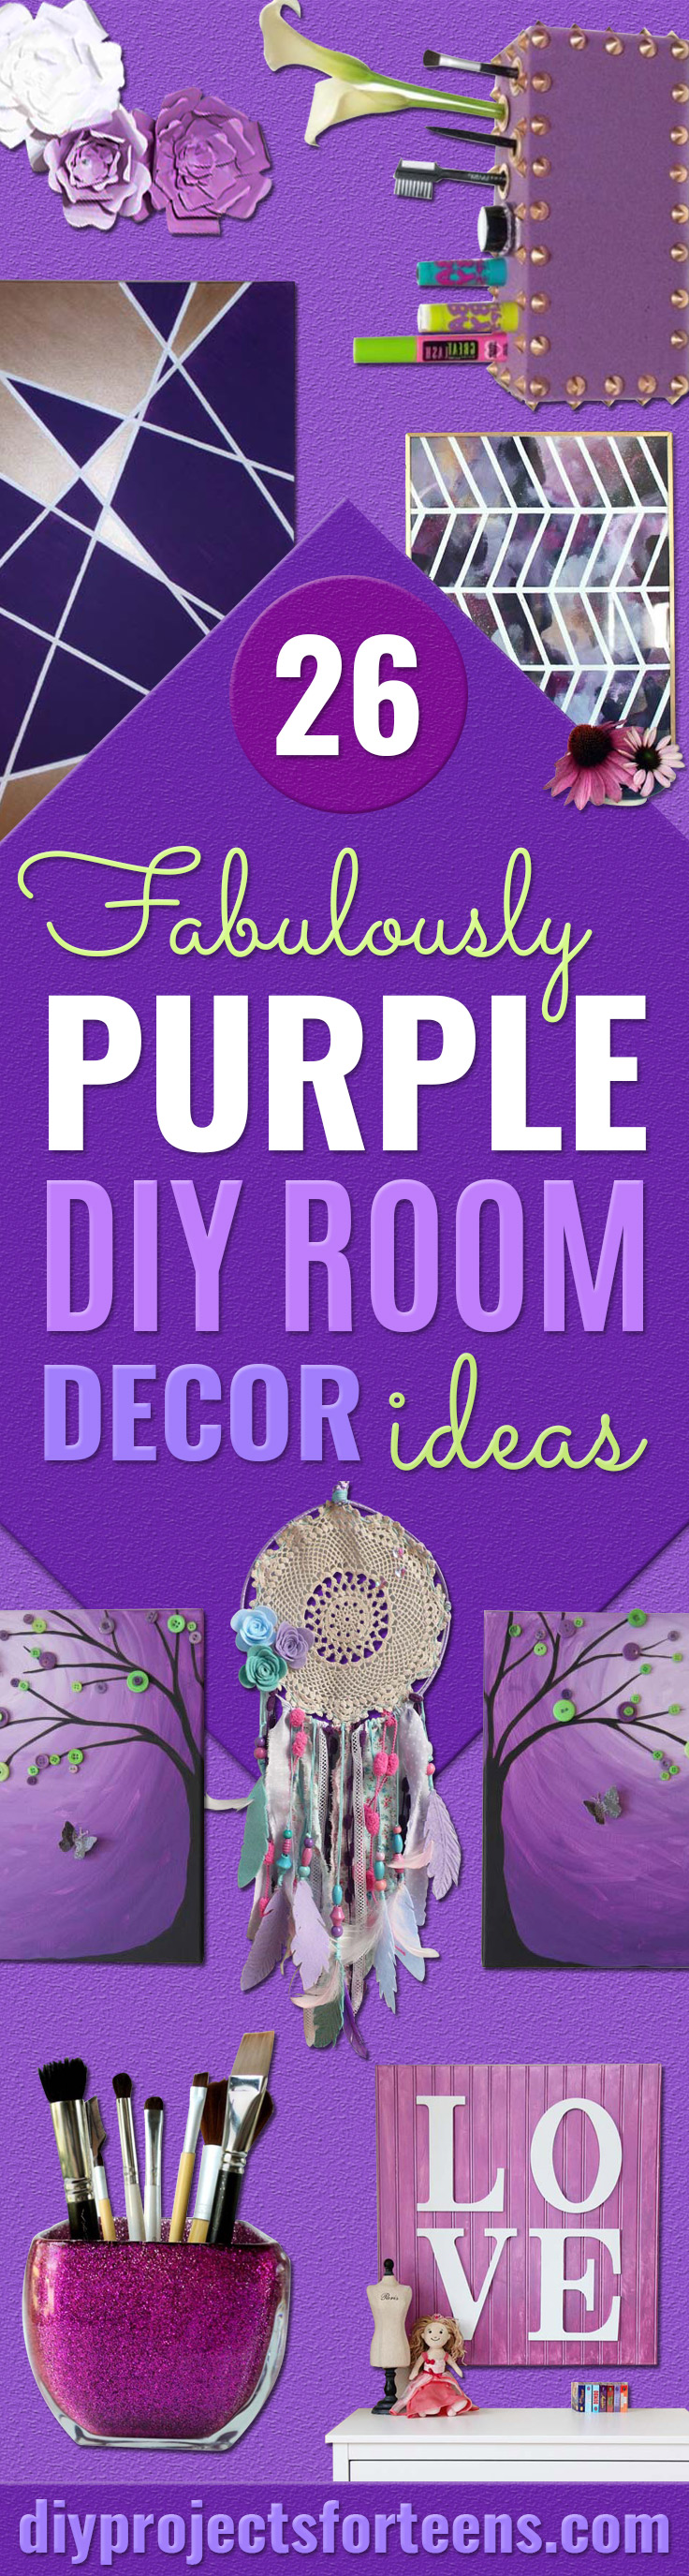 Diy Purple Room Decor Best Bedroom Ideas And Projects In Purple Cool Accessories